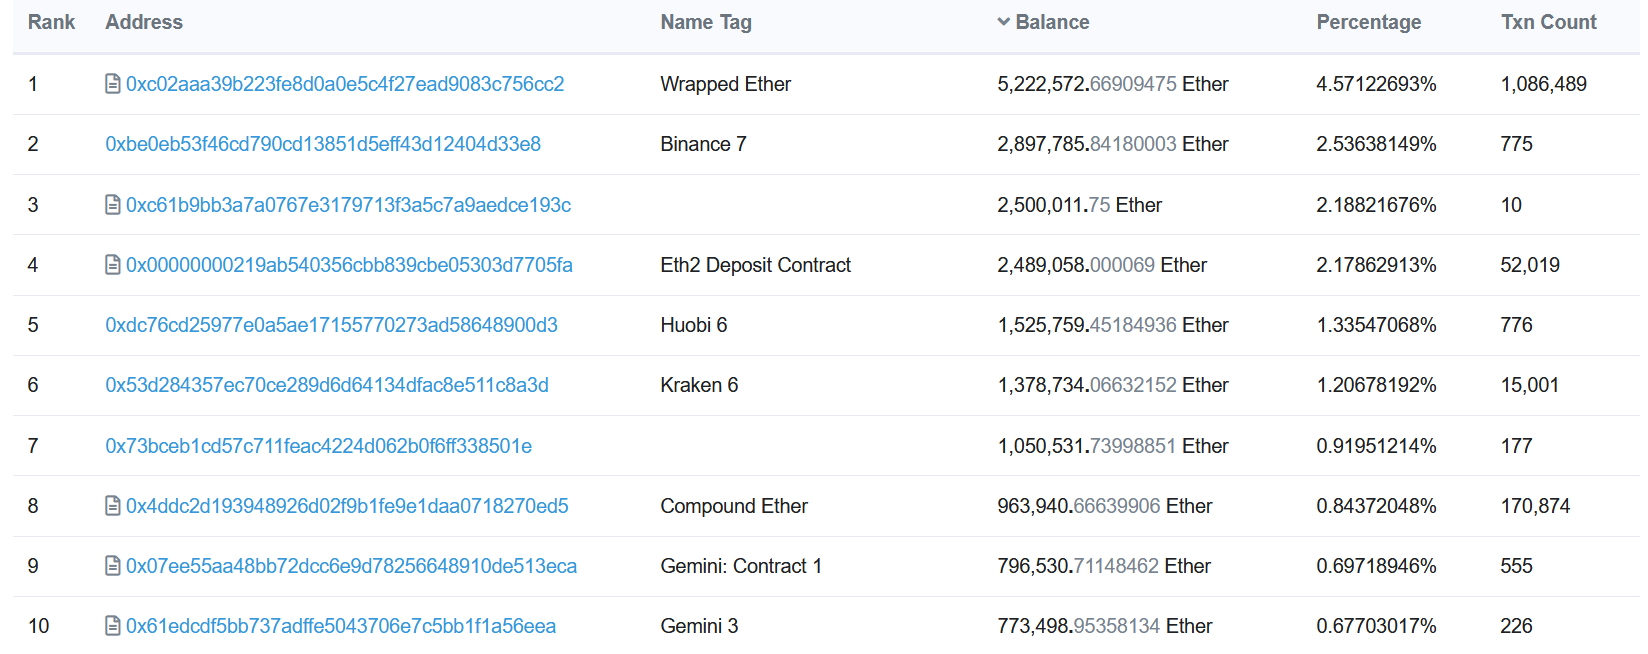 Gnosis is 3rd largest ETH holder with 2.2% of supply